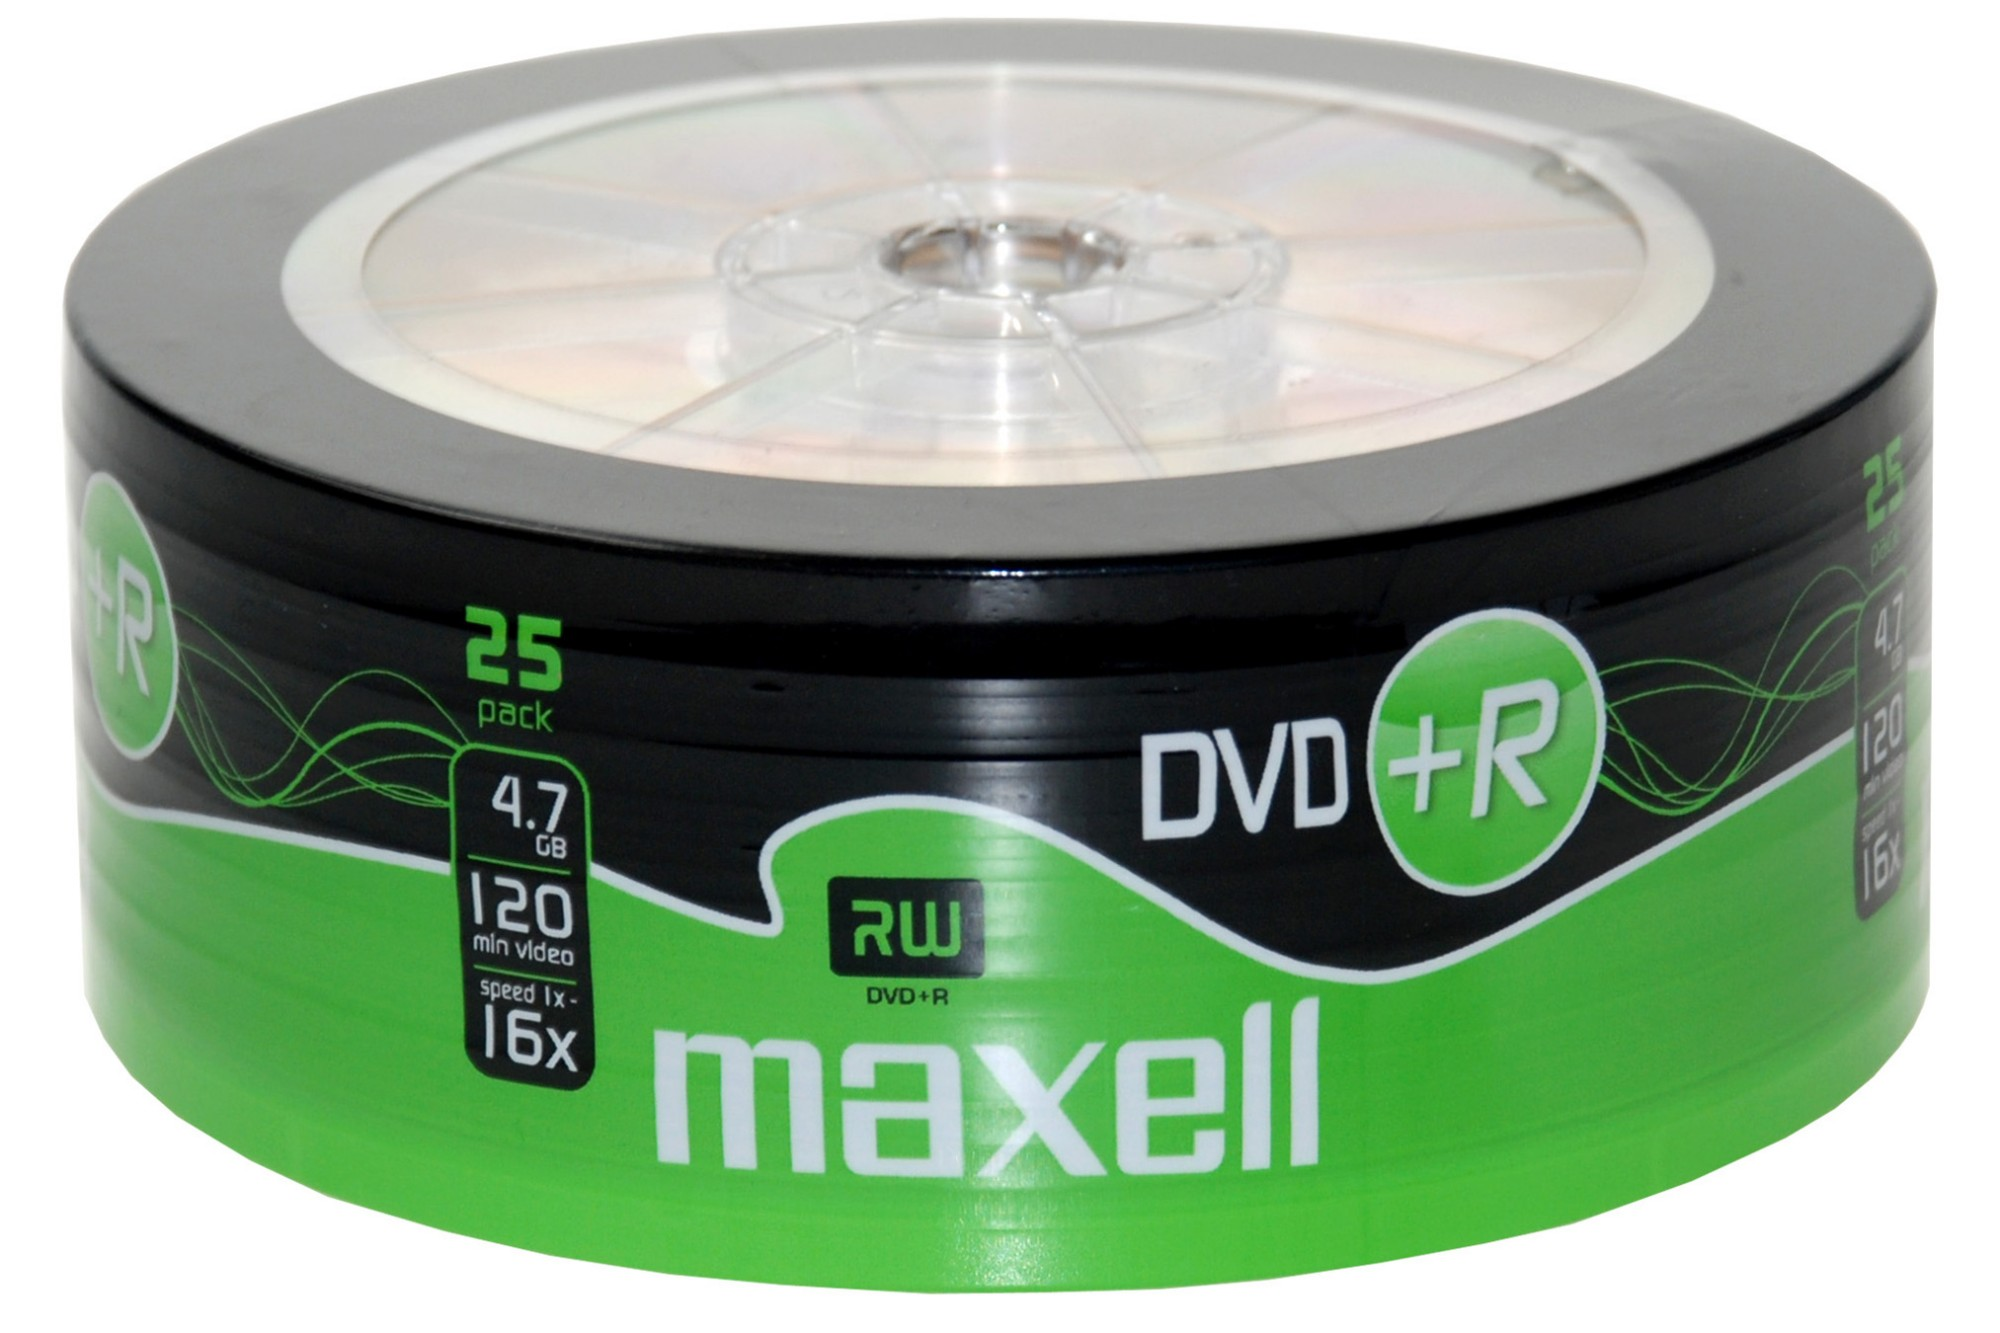 Maxell DVD+R Shrink Wrap (25 Pack)